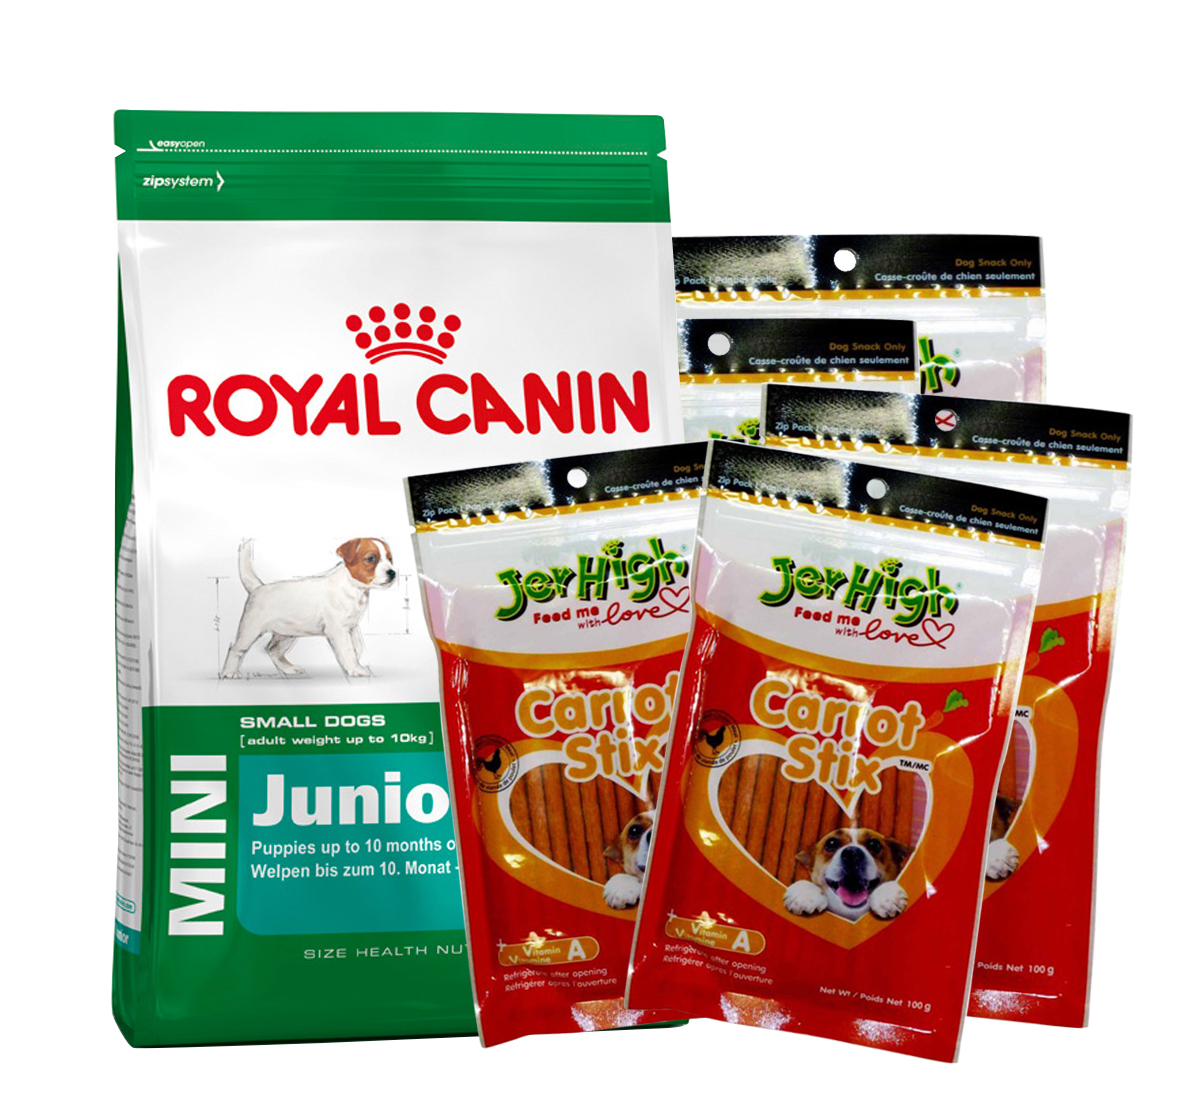 royal canin mini junior 4 kg with jerhigh carrot stick dog treats dogspot online pet. Black Bedroom Furniture Sets. Home Design Ideas